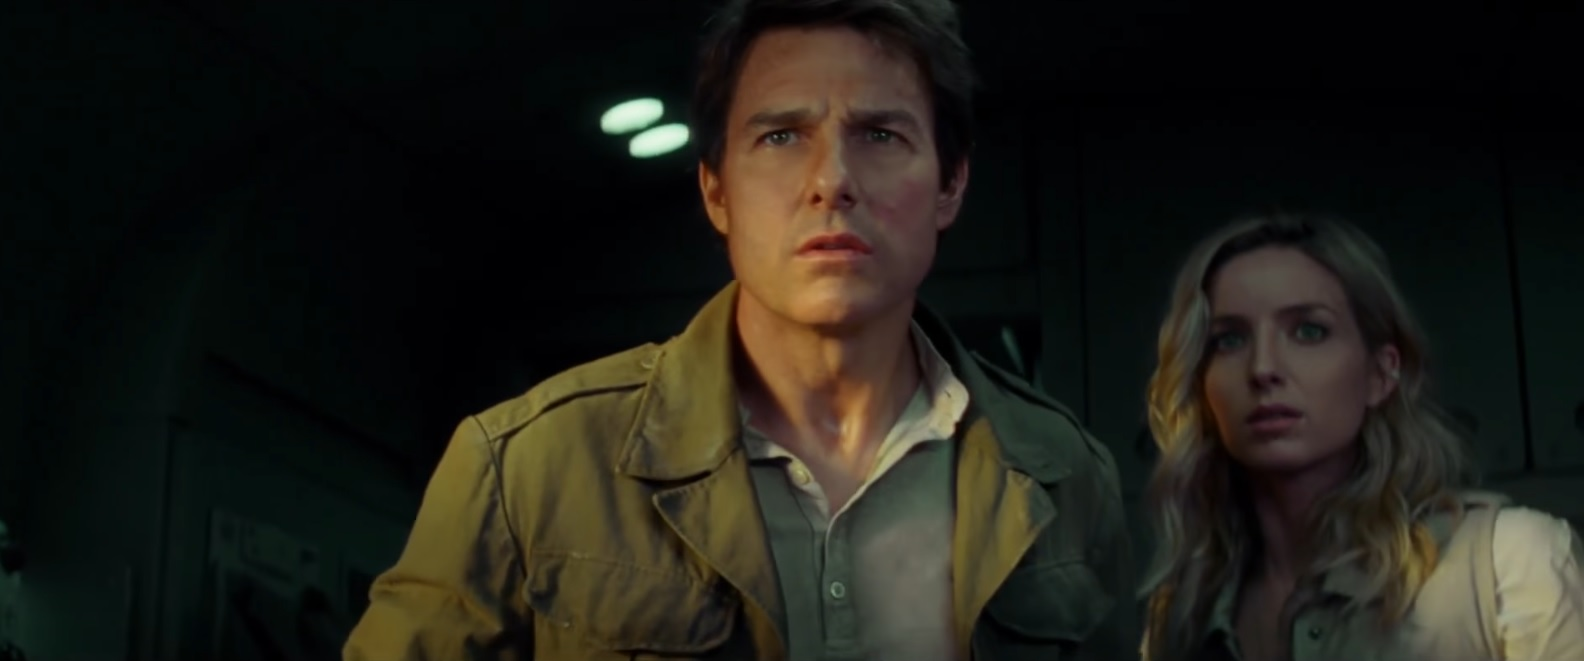 Tom Cruise faces ancient horrors in first trailer for 'The Mummy'